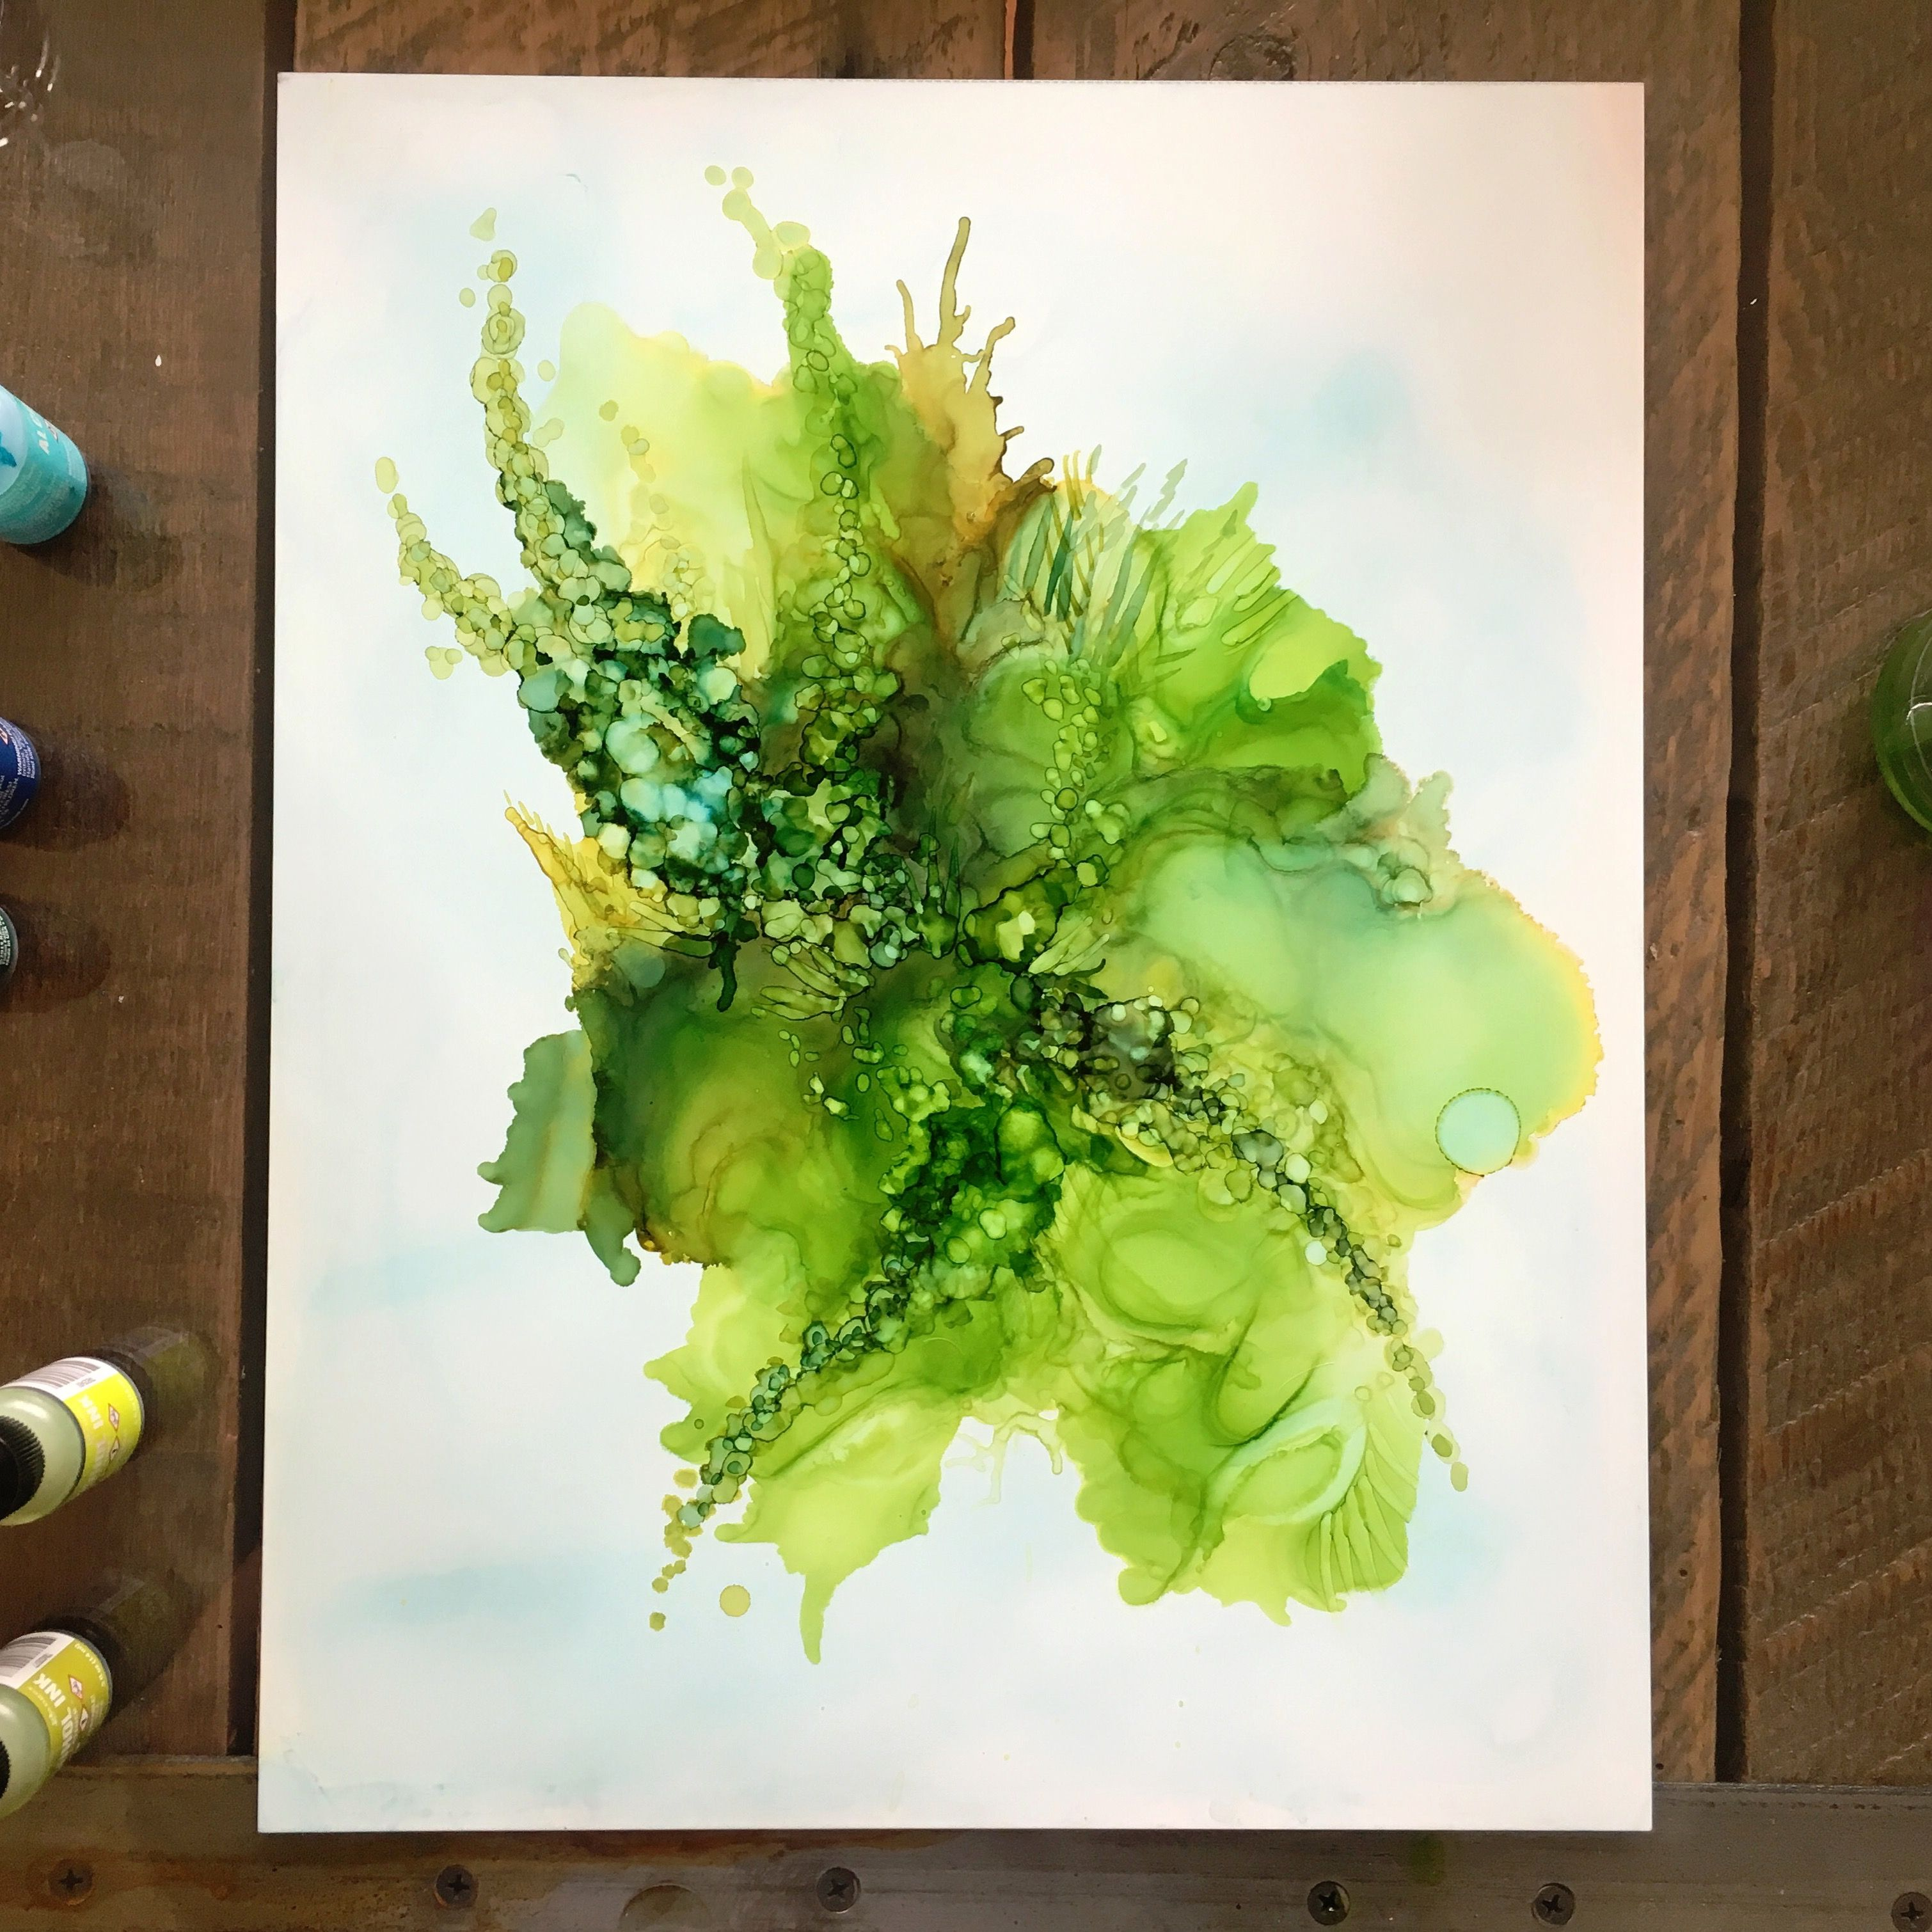 Botanical Art Alcohol Ink On Yupo Paper Abstract Art By Jess